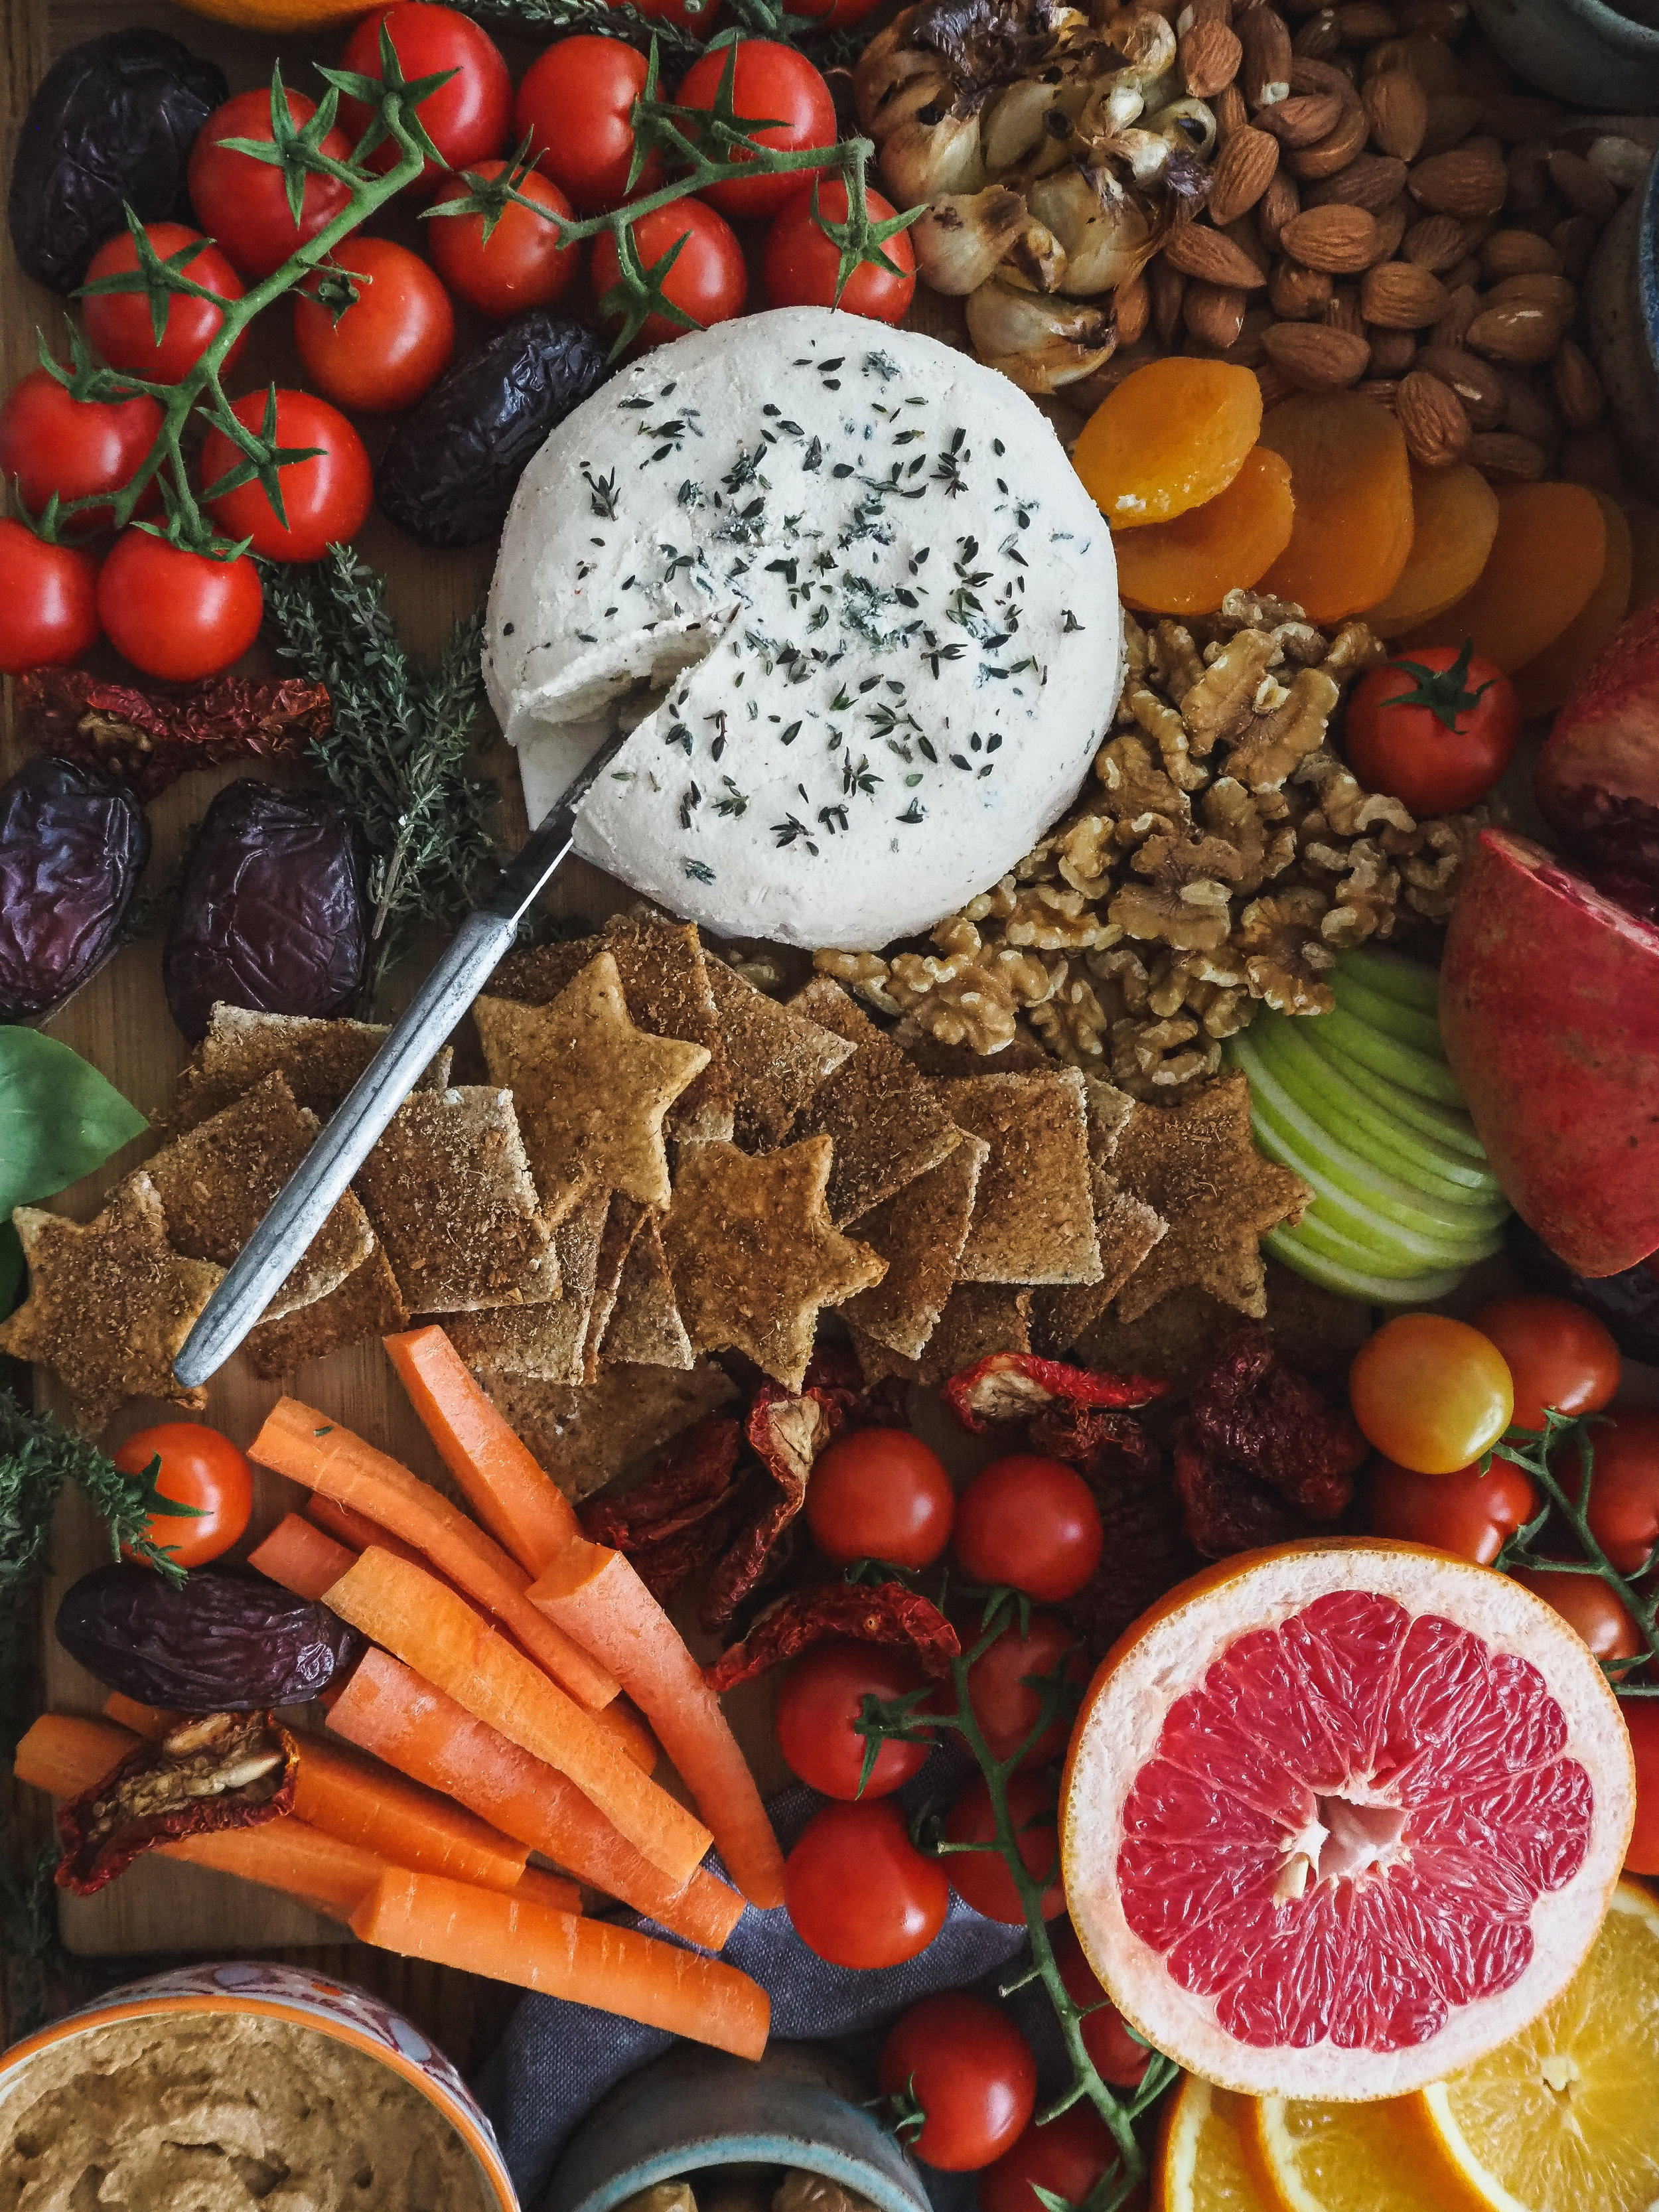 Vegan Appetizer Party Platter / Snack Board Spread | Plant-Based, Homemade  All Rights Reserved © Elly Hollenhorst